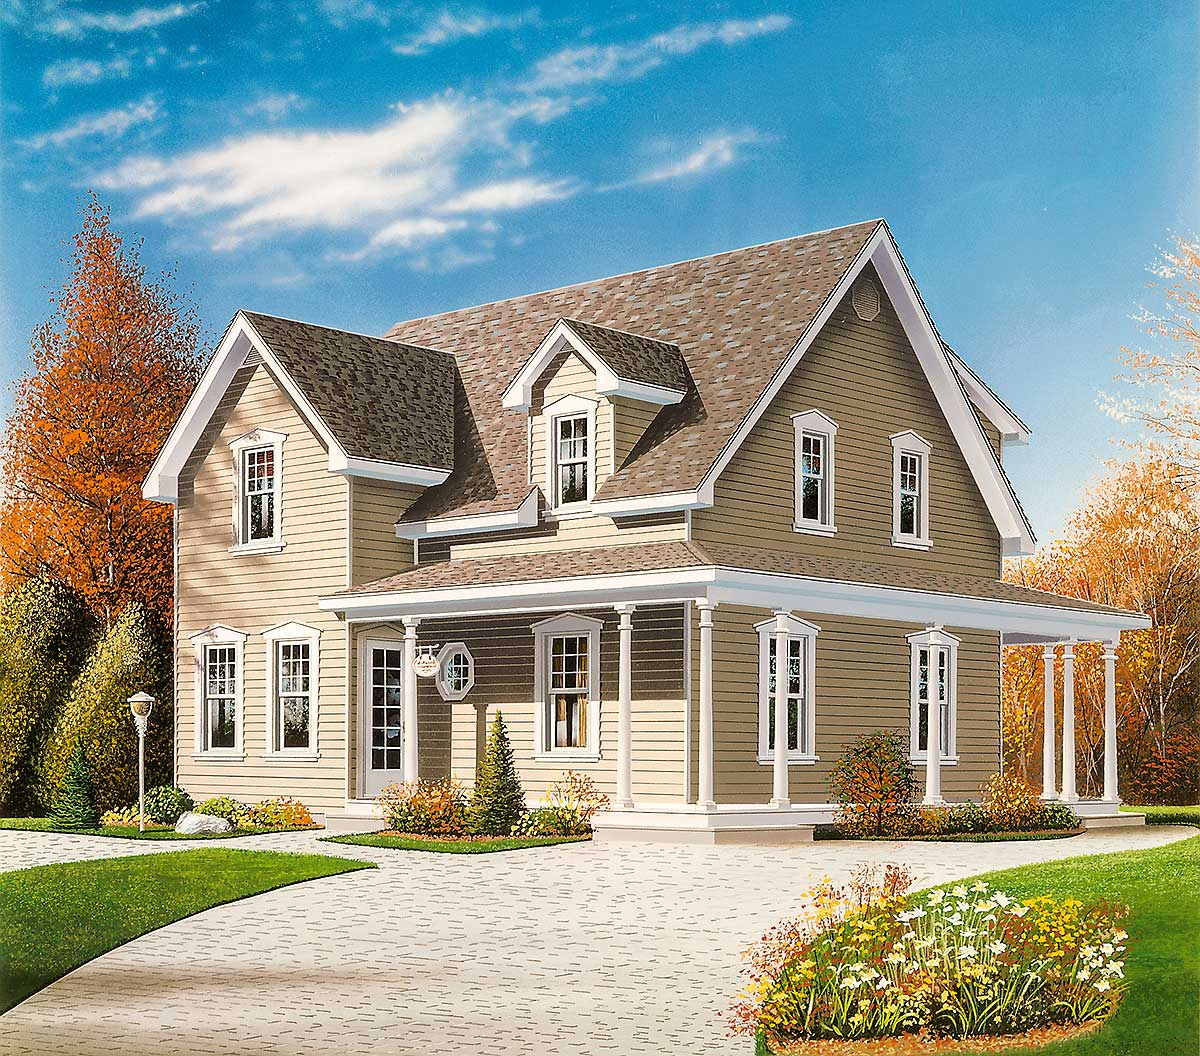 house plans country farmhouse narrow lot country home plan 2199dr 2nd floor master suite cad available canadian country 9425